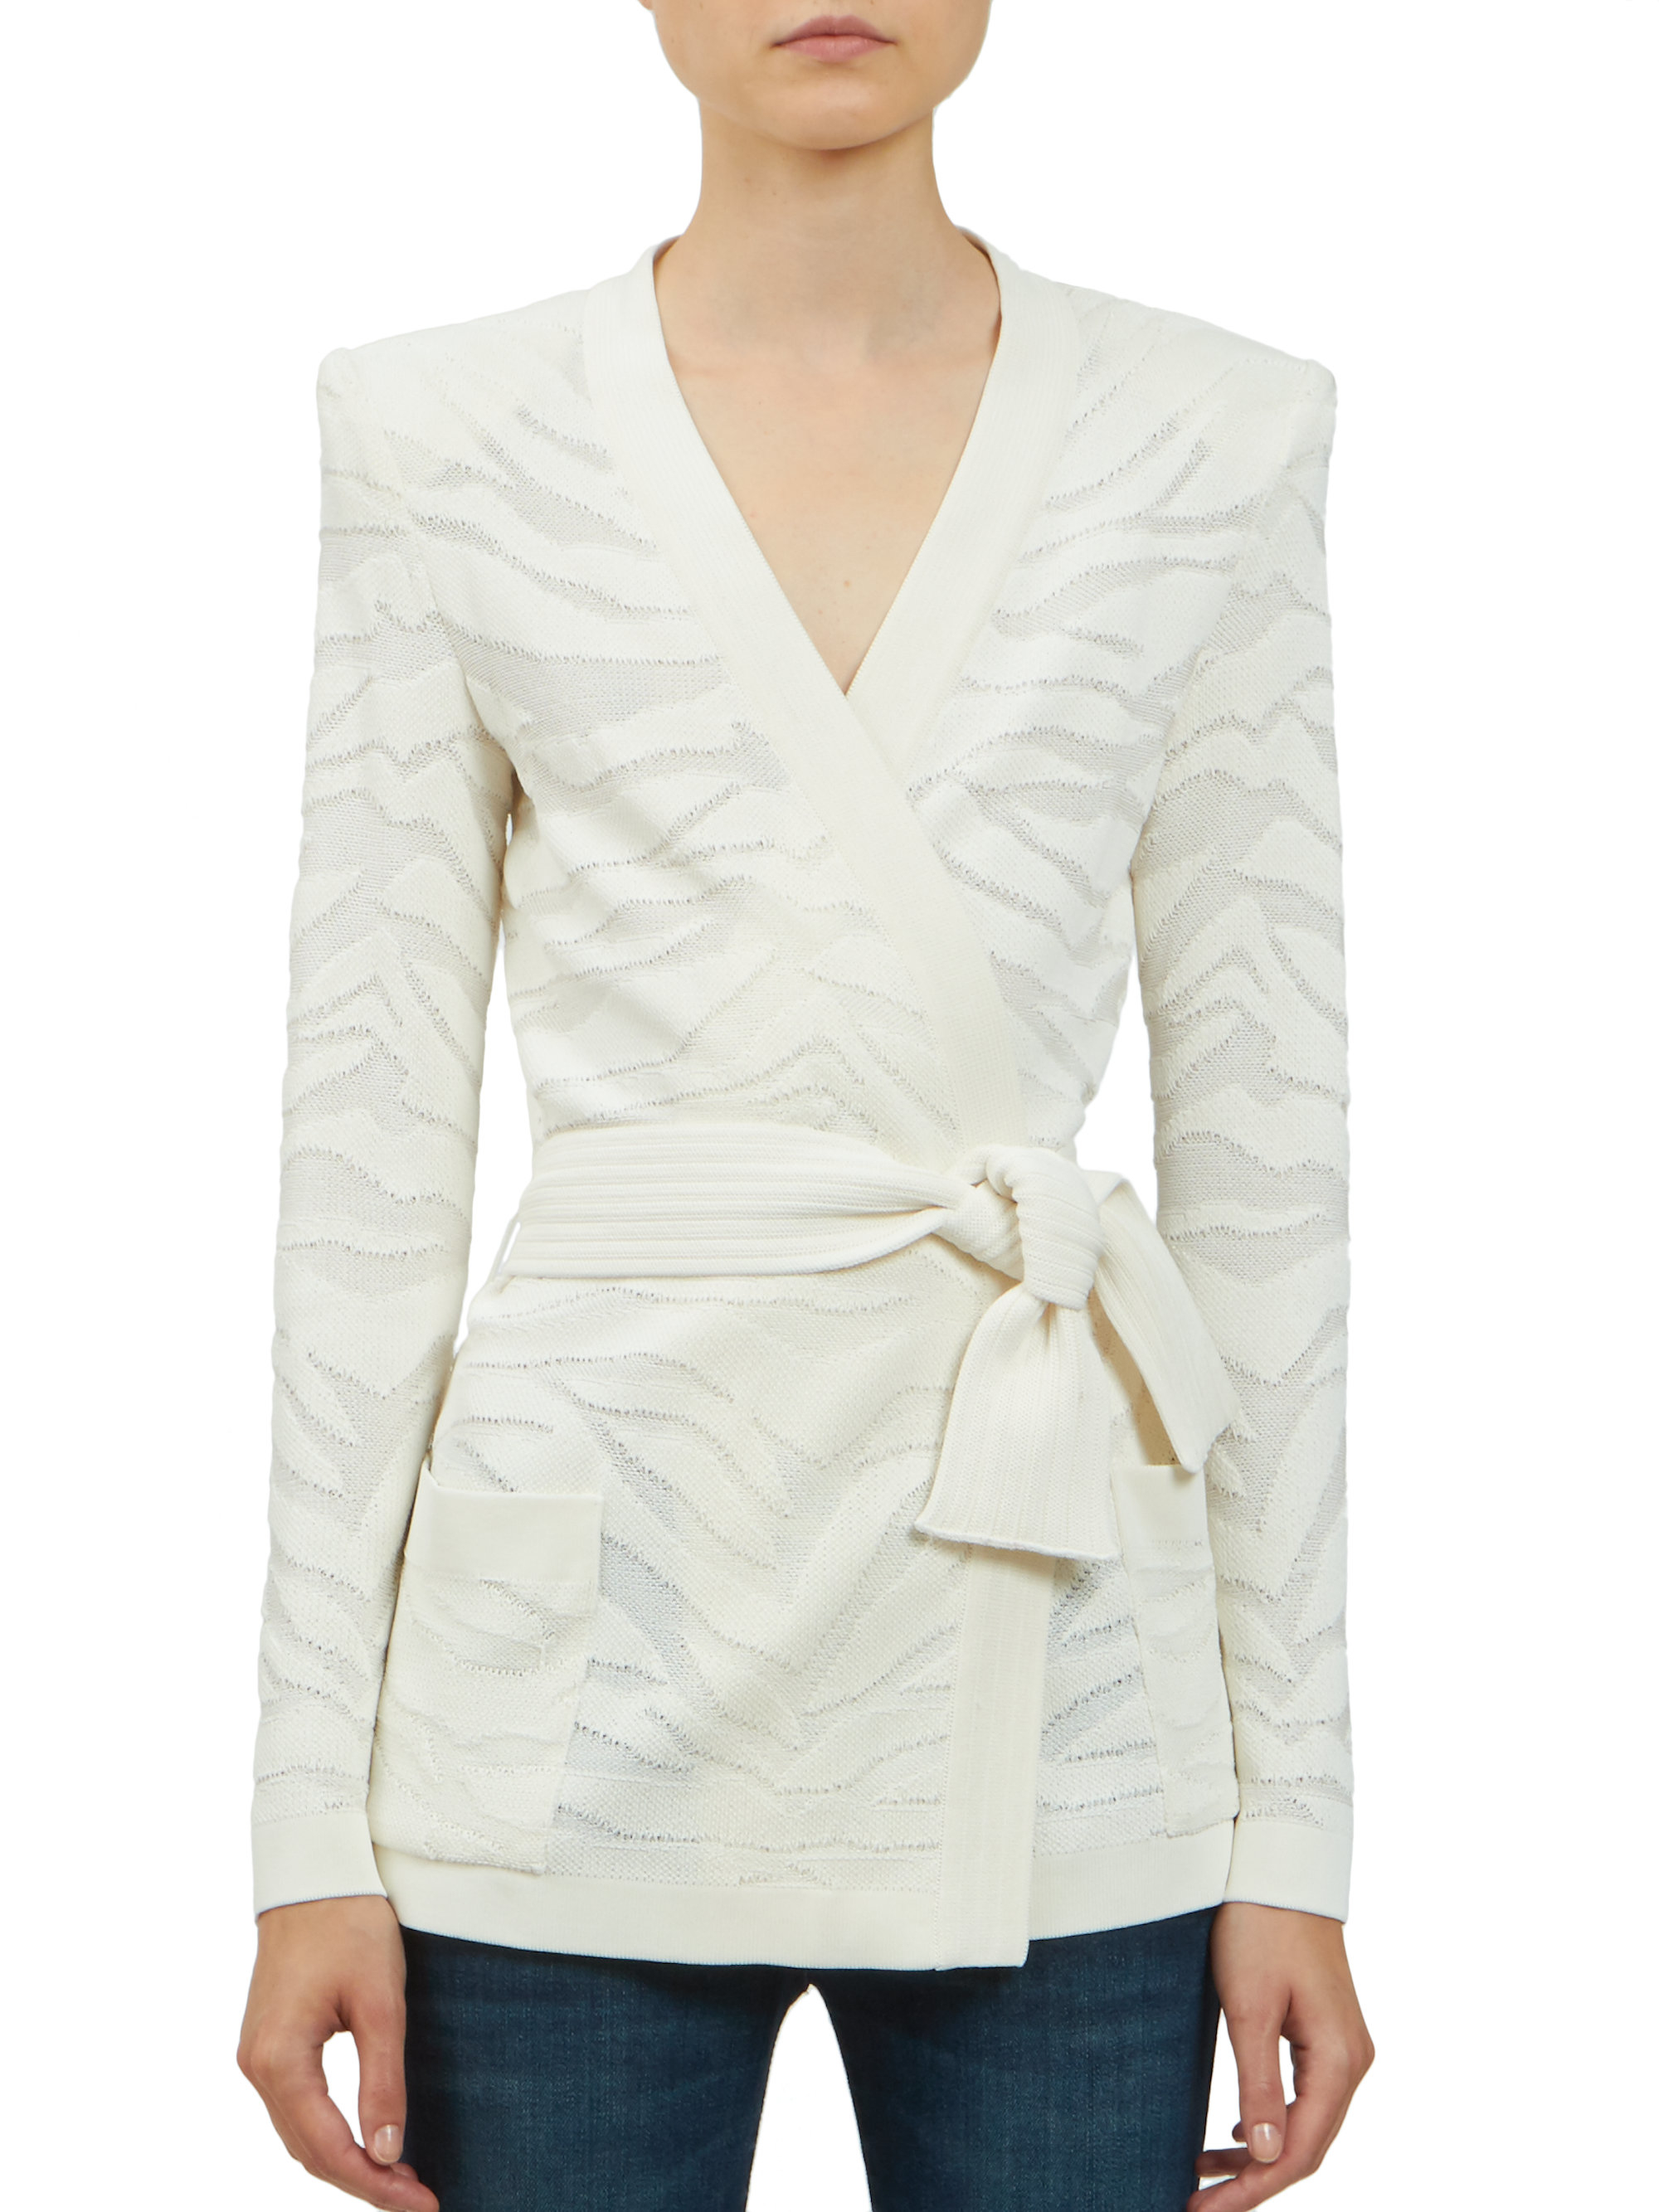 Balmain Deveree Textured Wrap Cardigan in White | Lyst